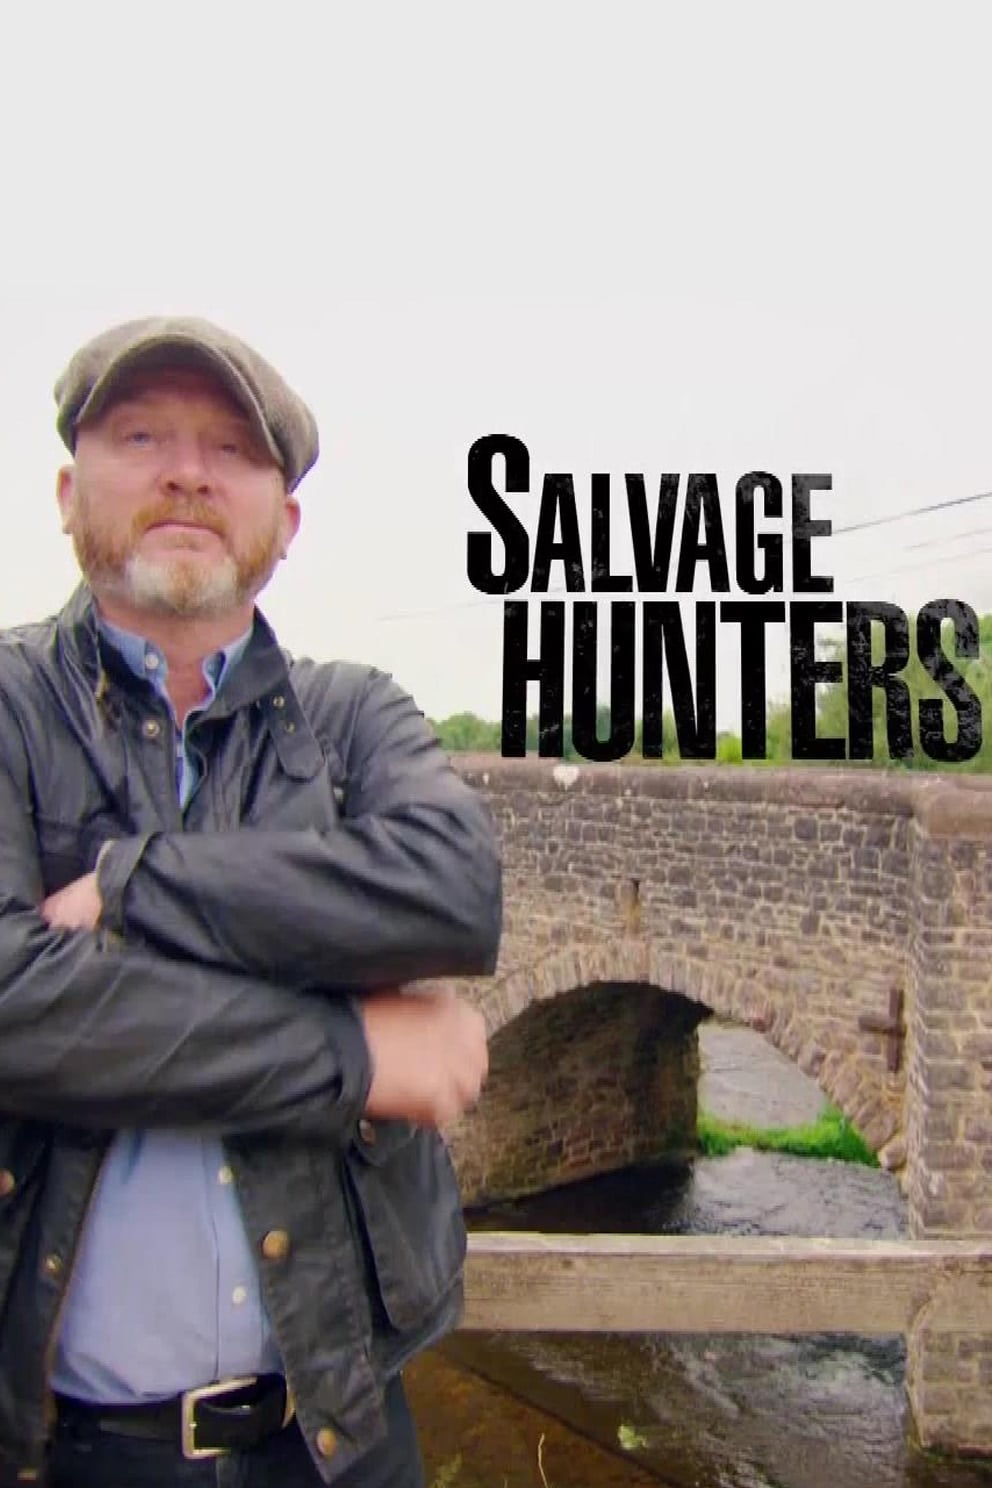 Salvage Hunters on FREECABLE TV